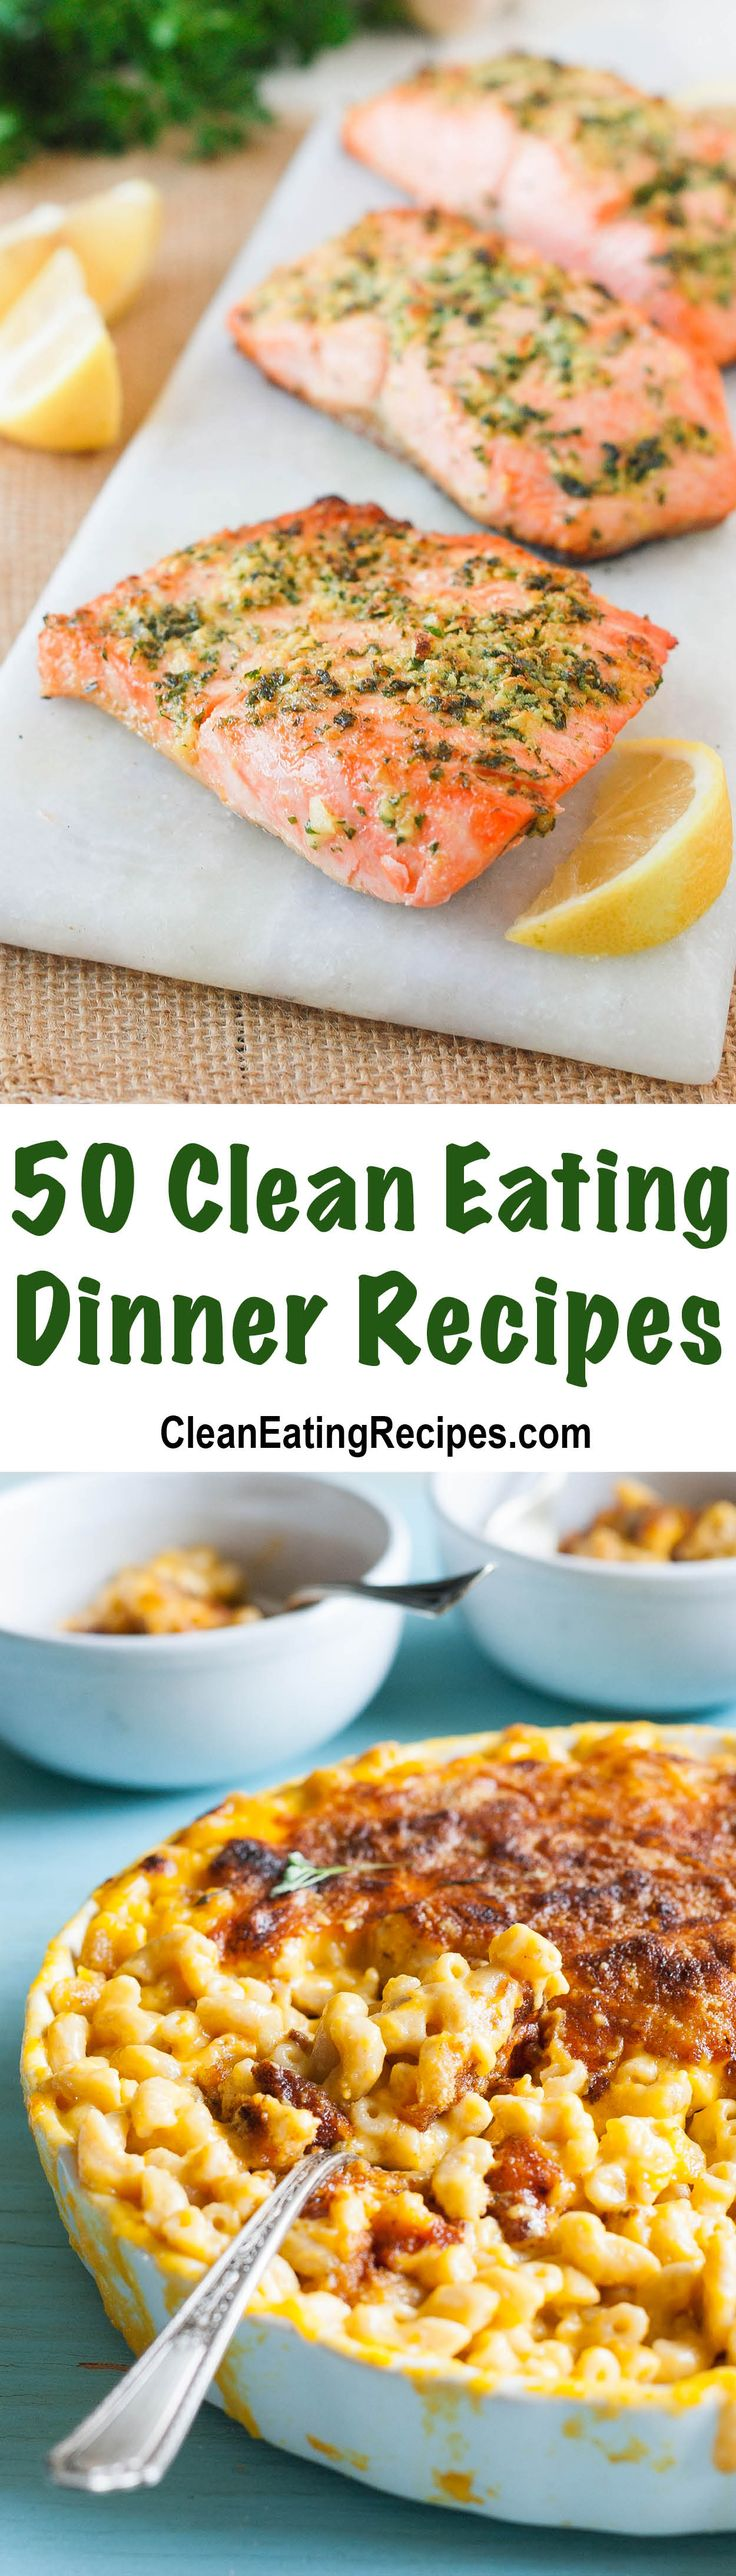 The 50 Best Clean Eating Dinner Recipes (Main Dishes) - I love how there is an image for every recipe and a link to click to get the recipe. It's like having my next 50 days of dinners all planned out